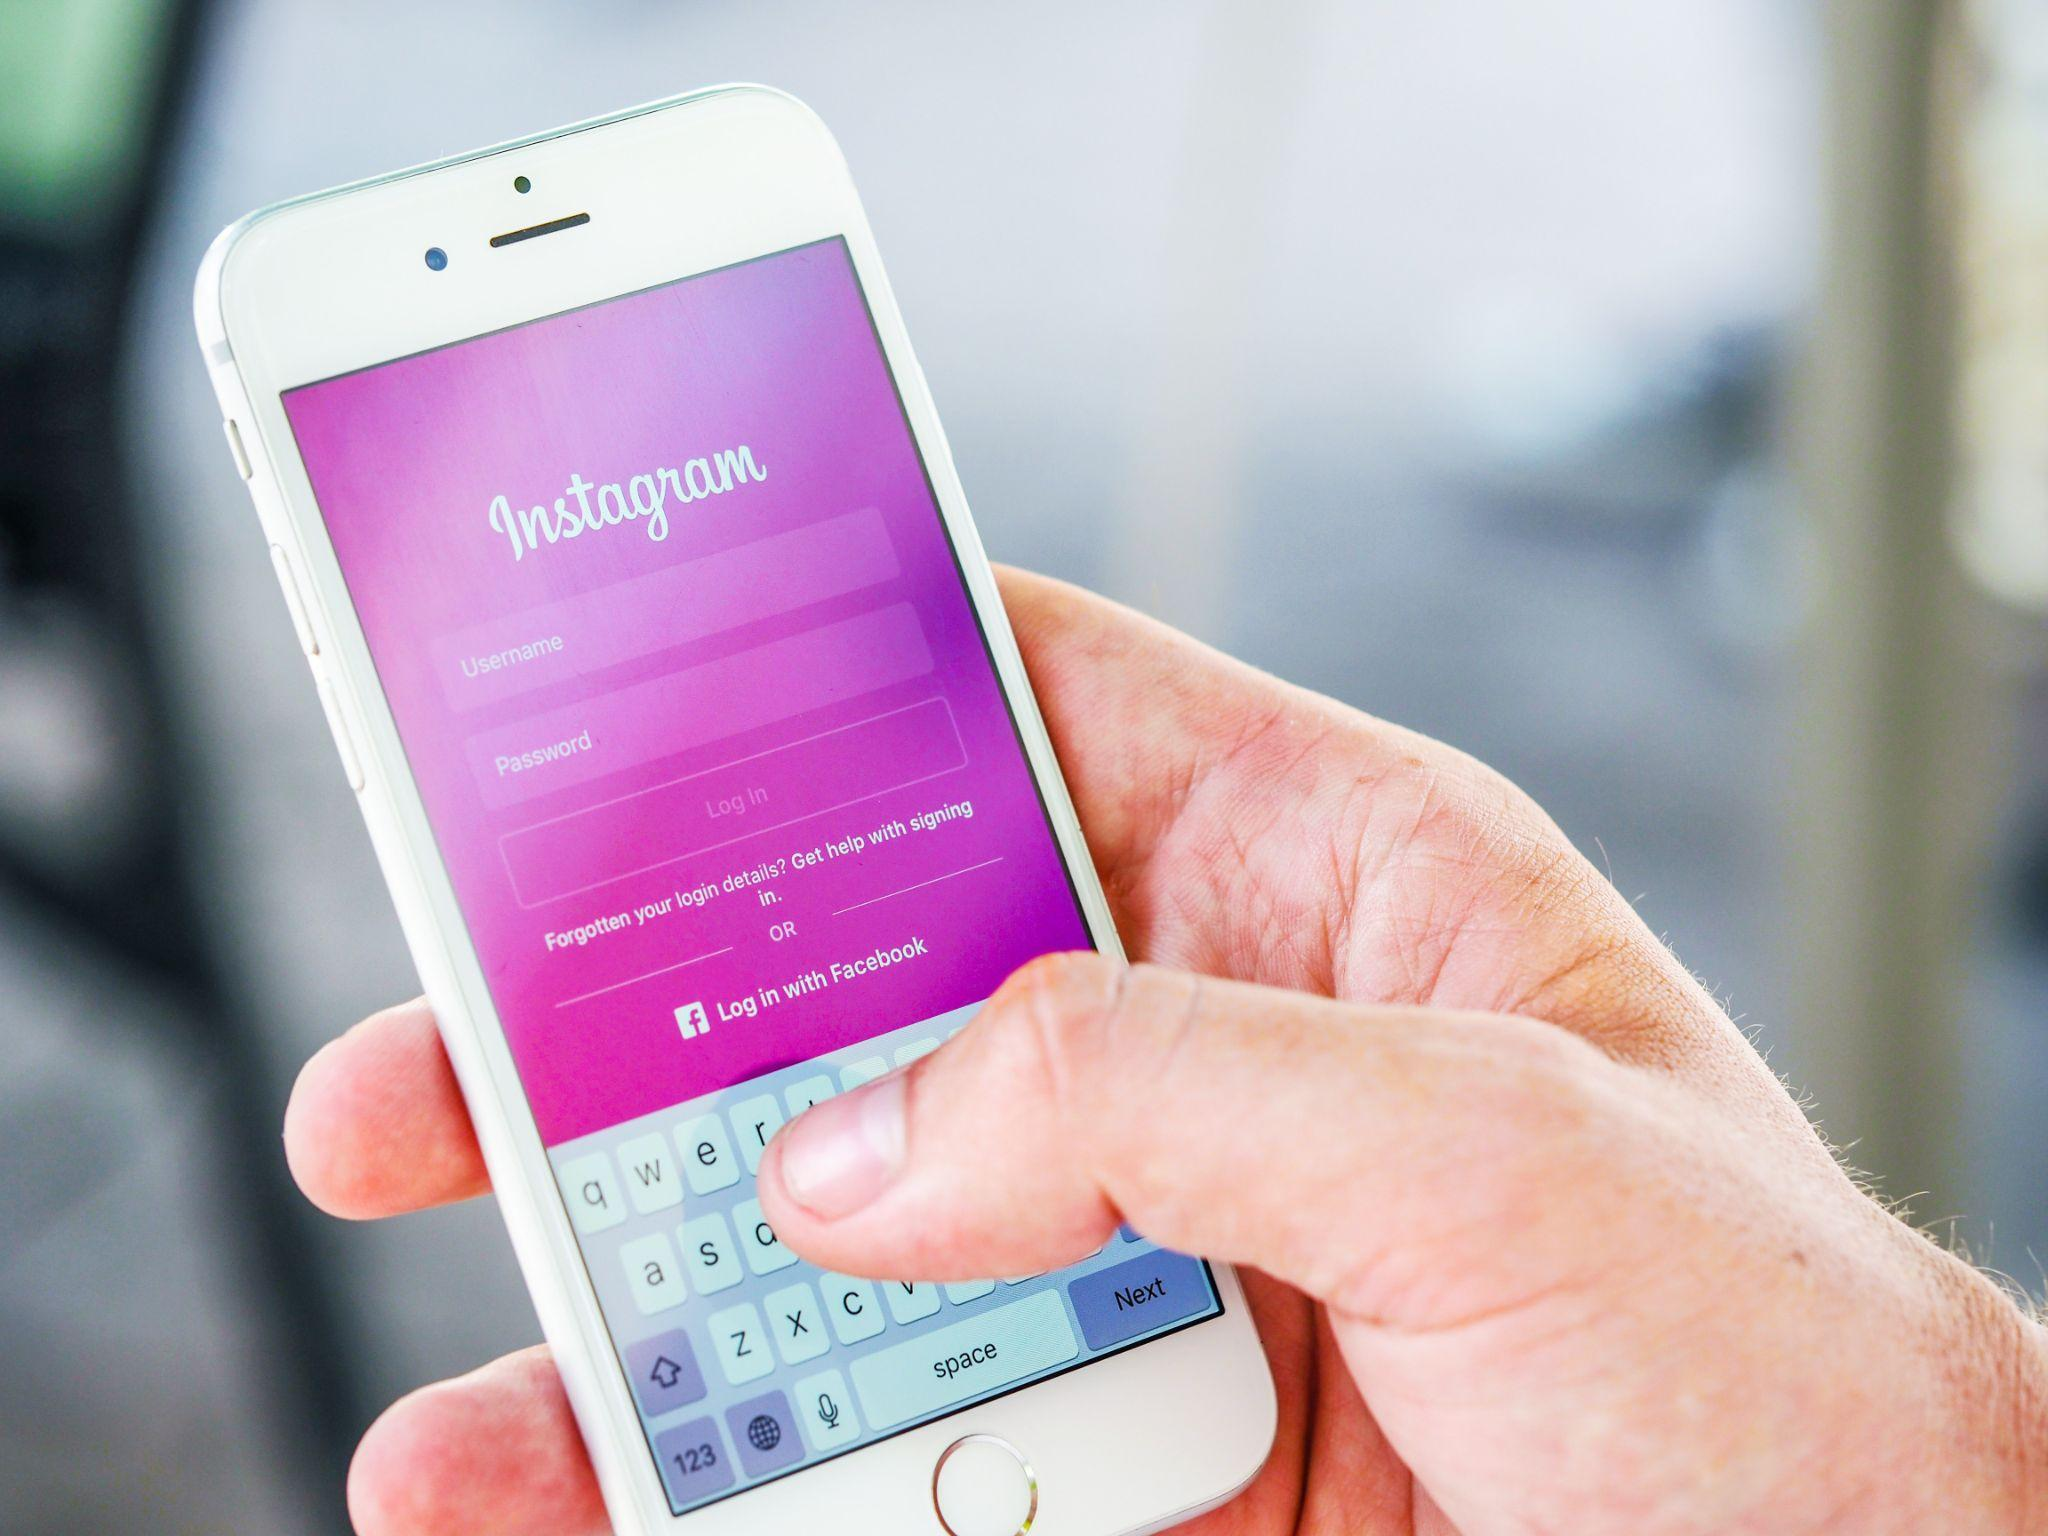 How to Use Instagram to Market the Small Business